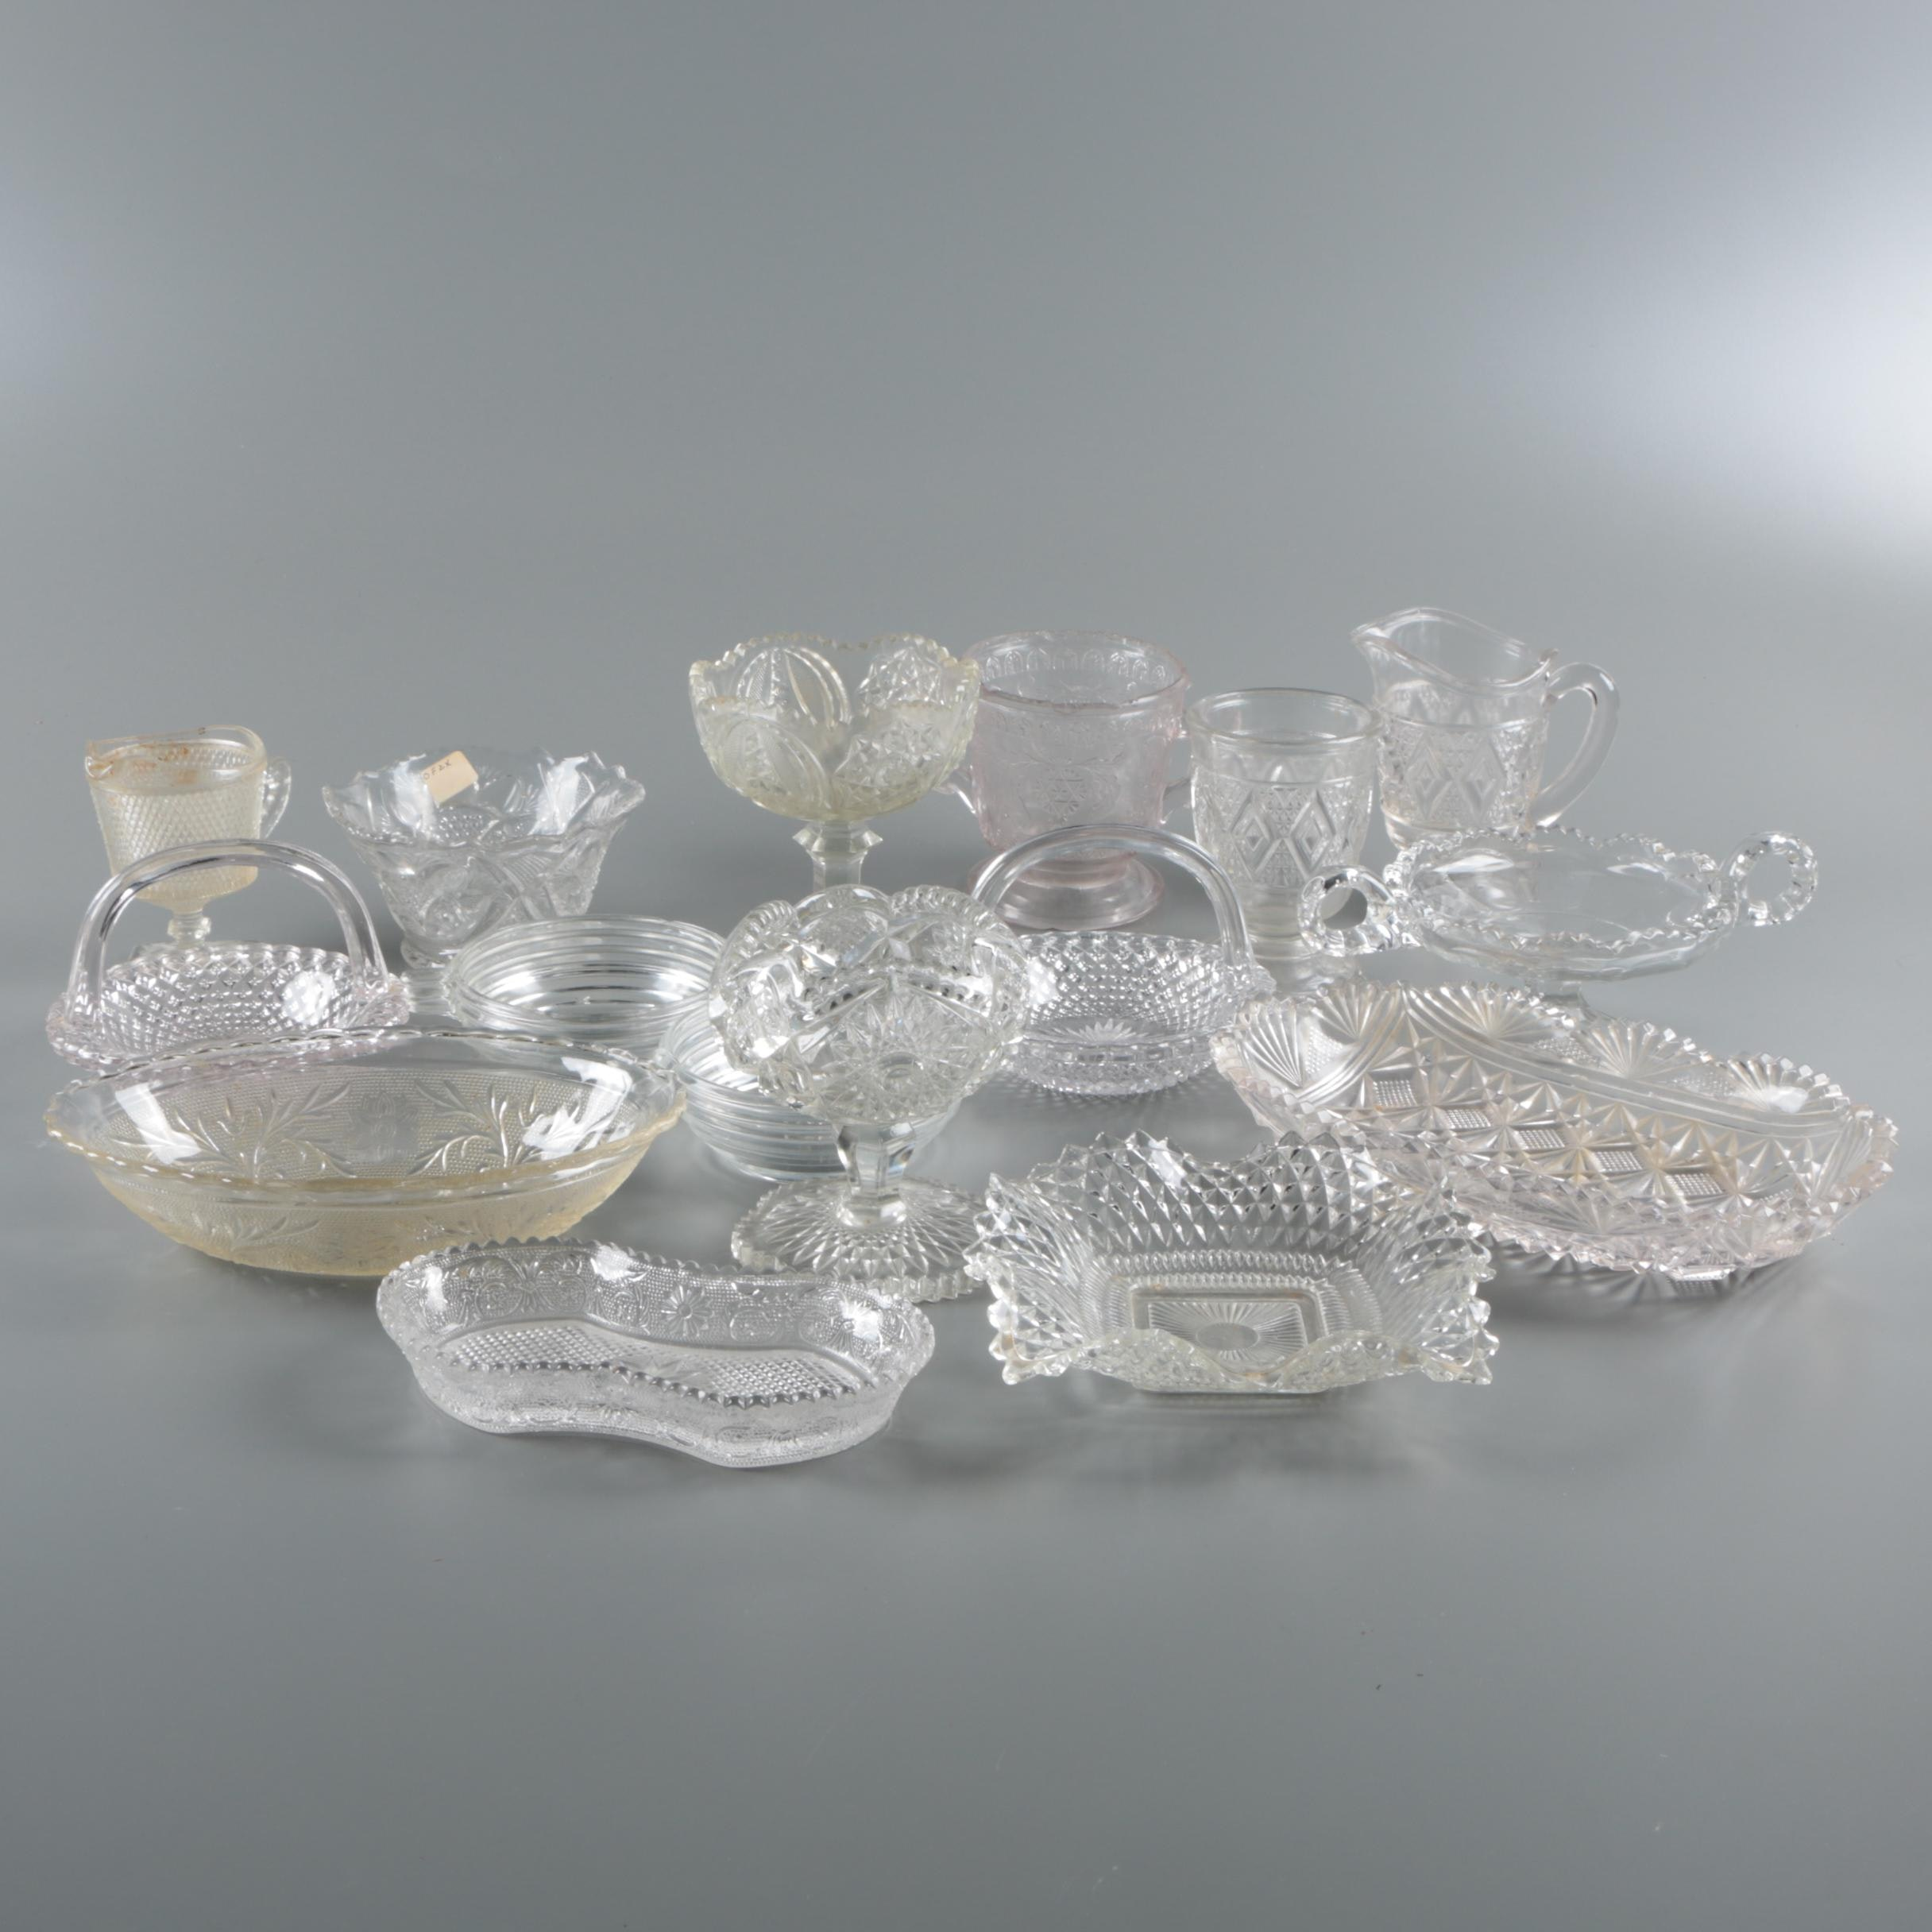 Antique and Vintage Pressed Glass Tableware